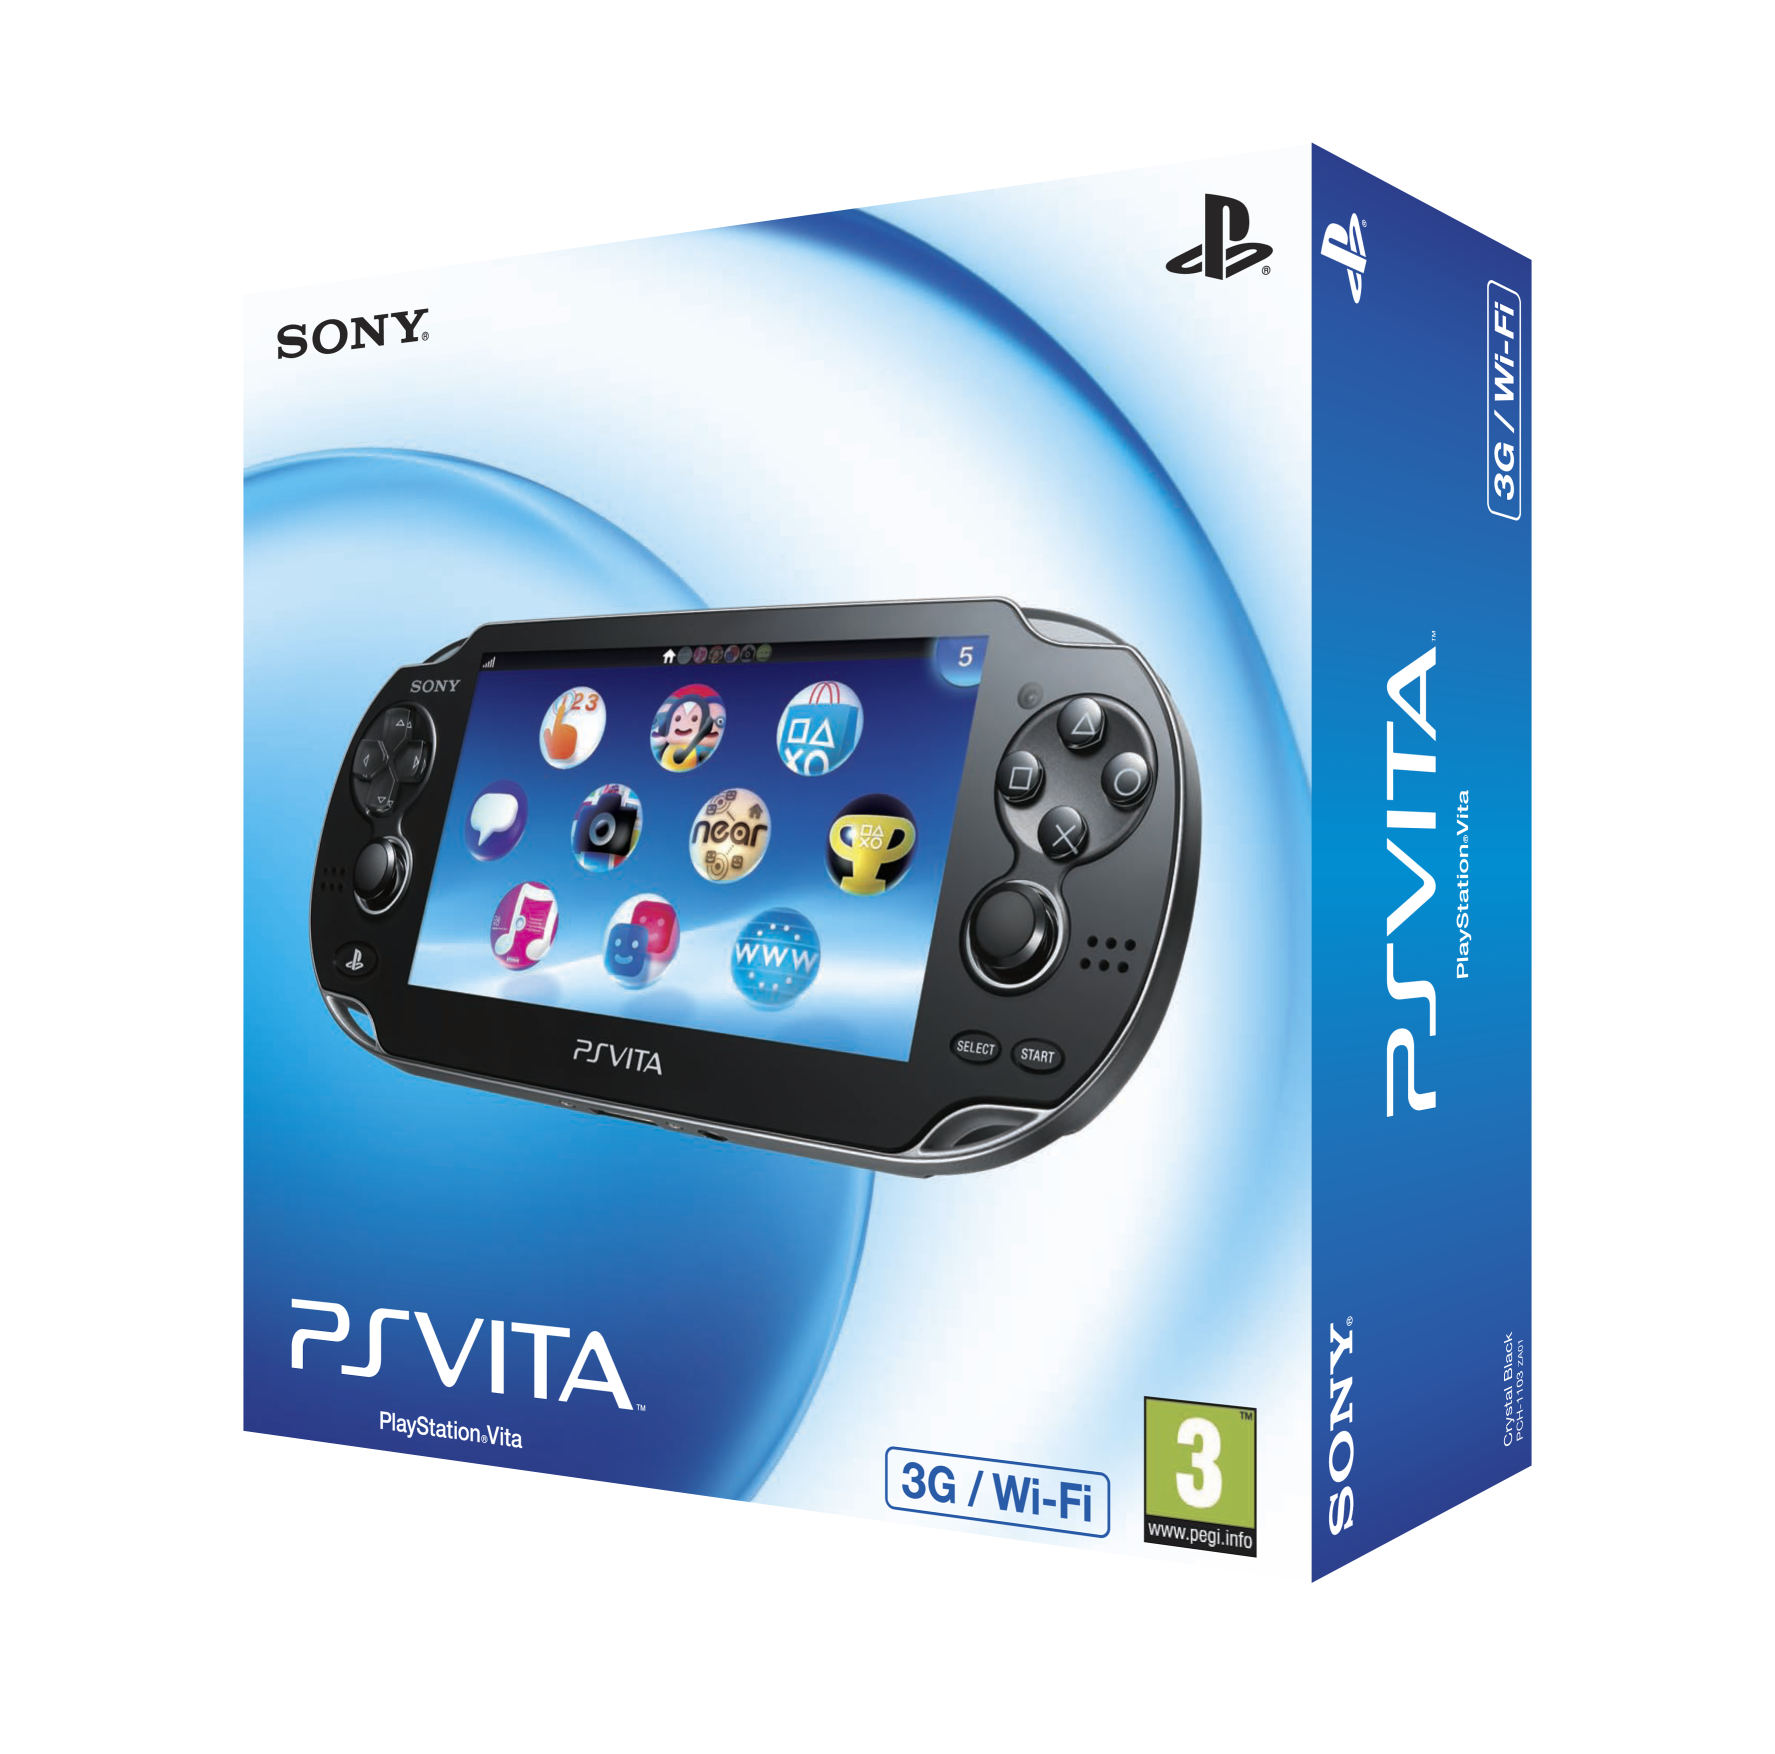 PS Vita - Retail Box